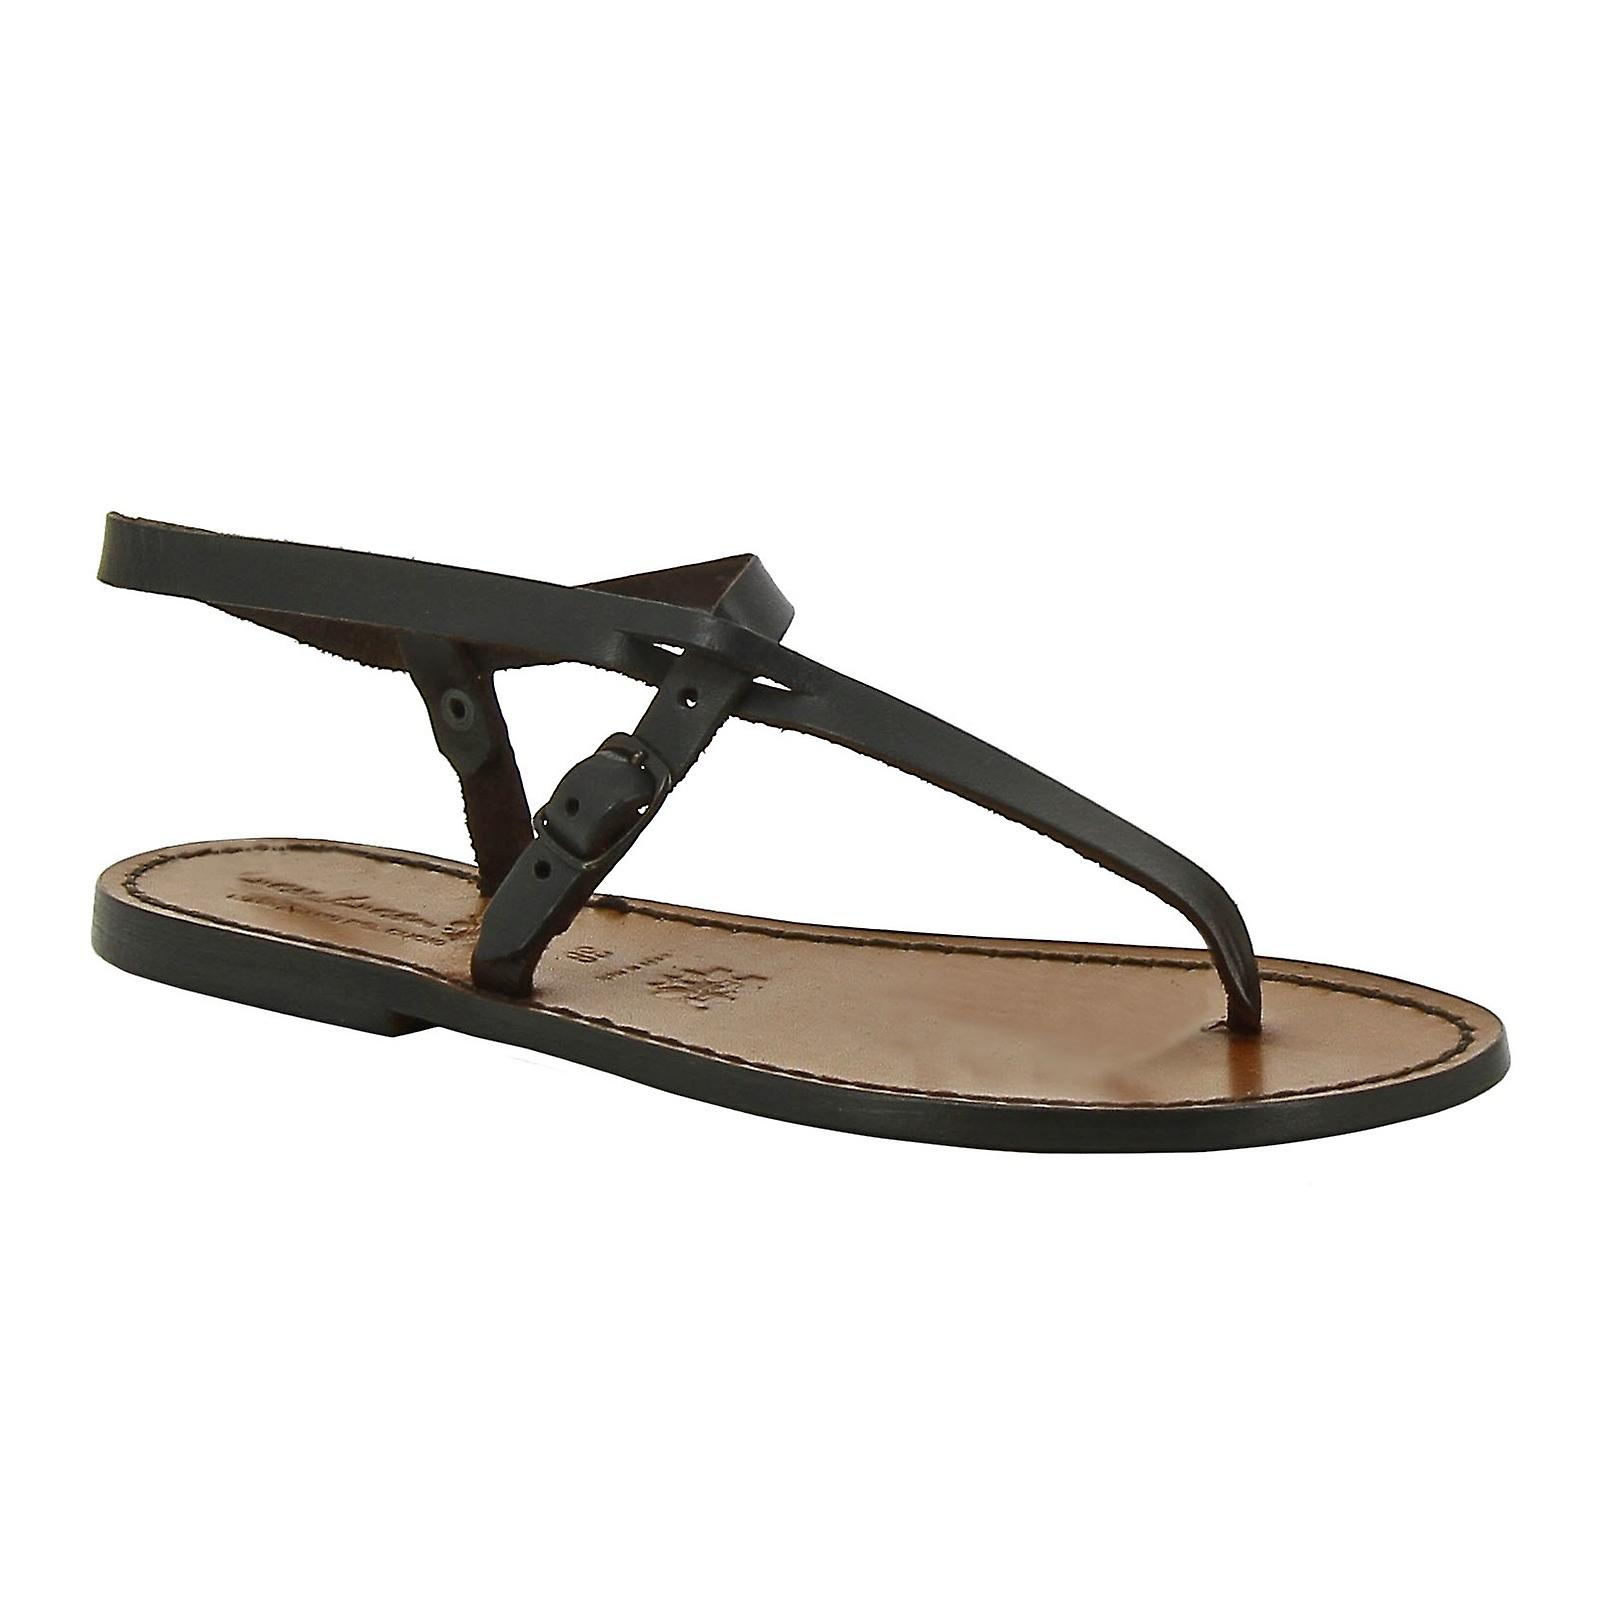 00108df8540307 Handmade leather thong sandals for women in dark brown